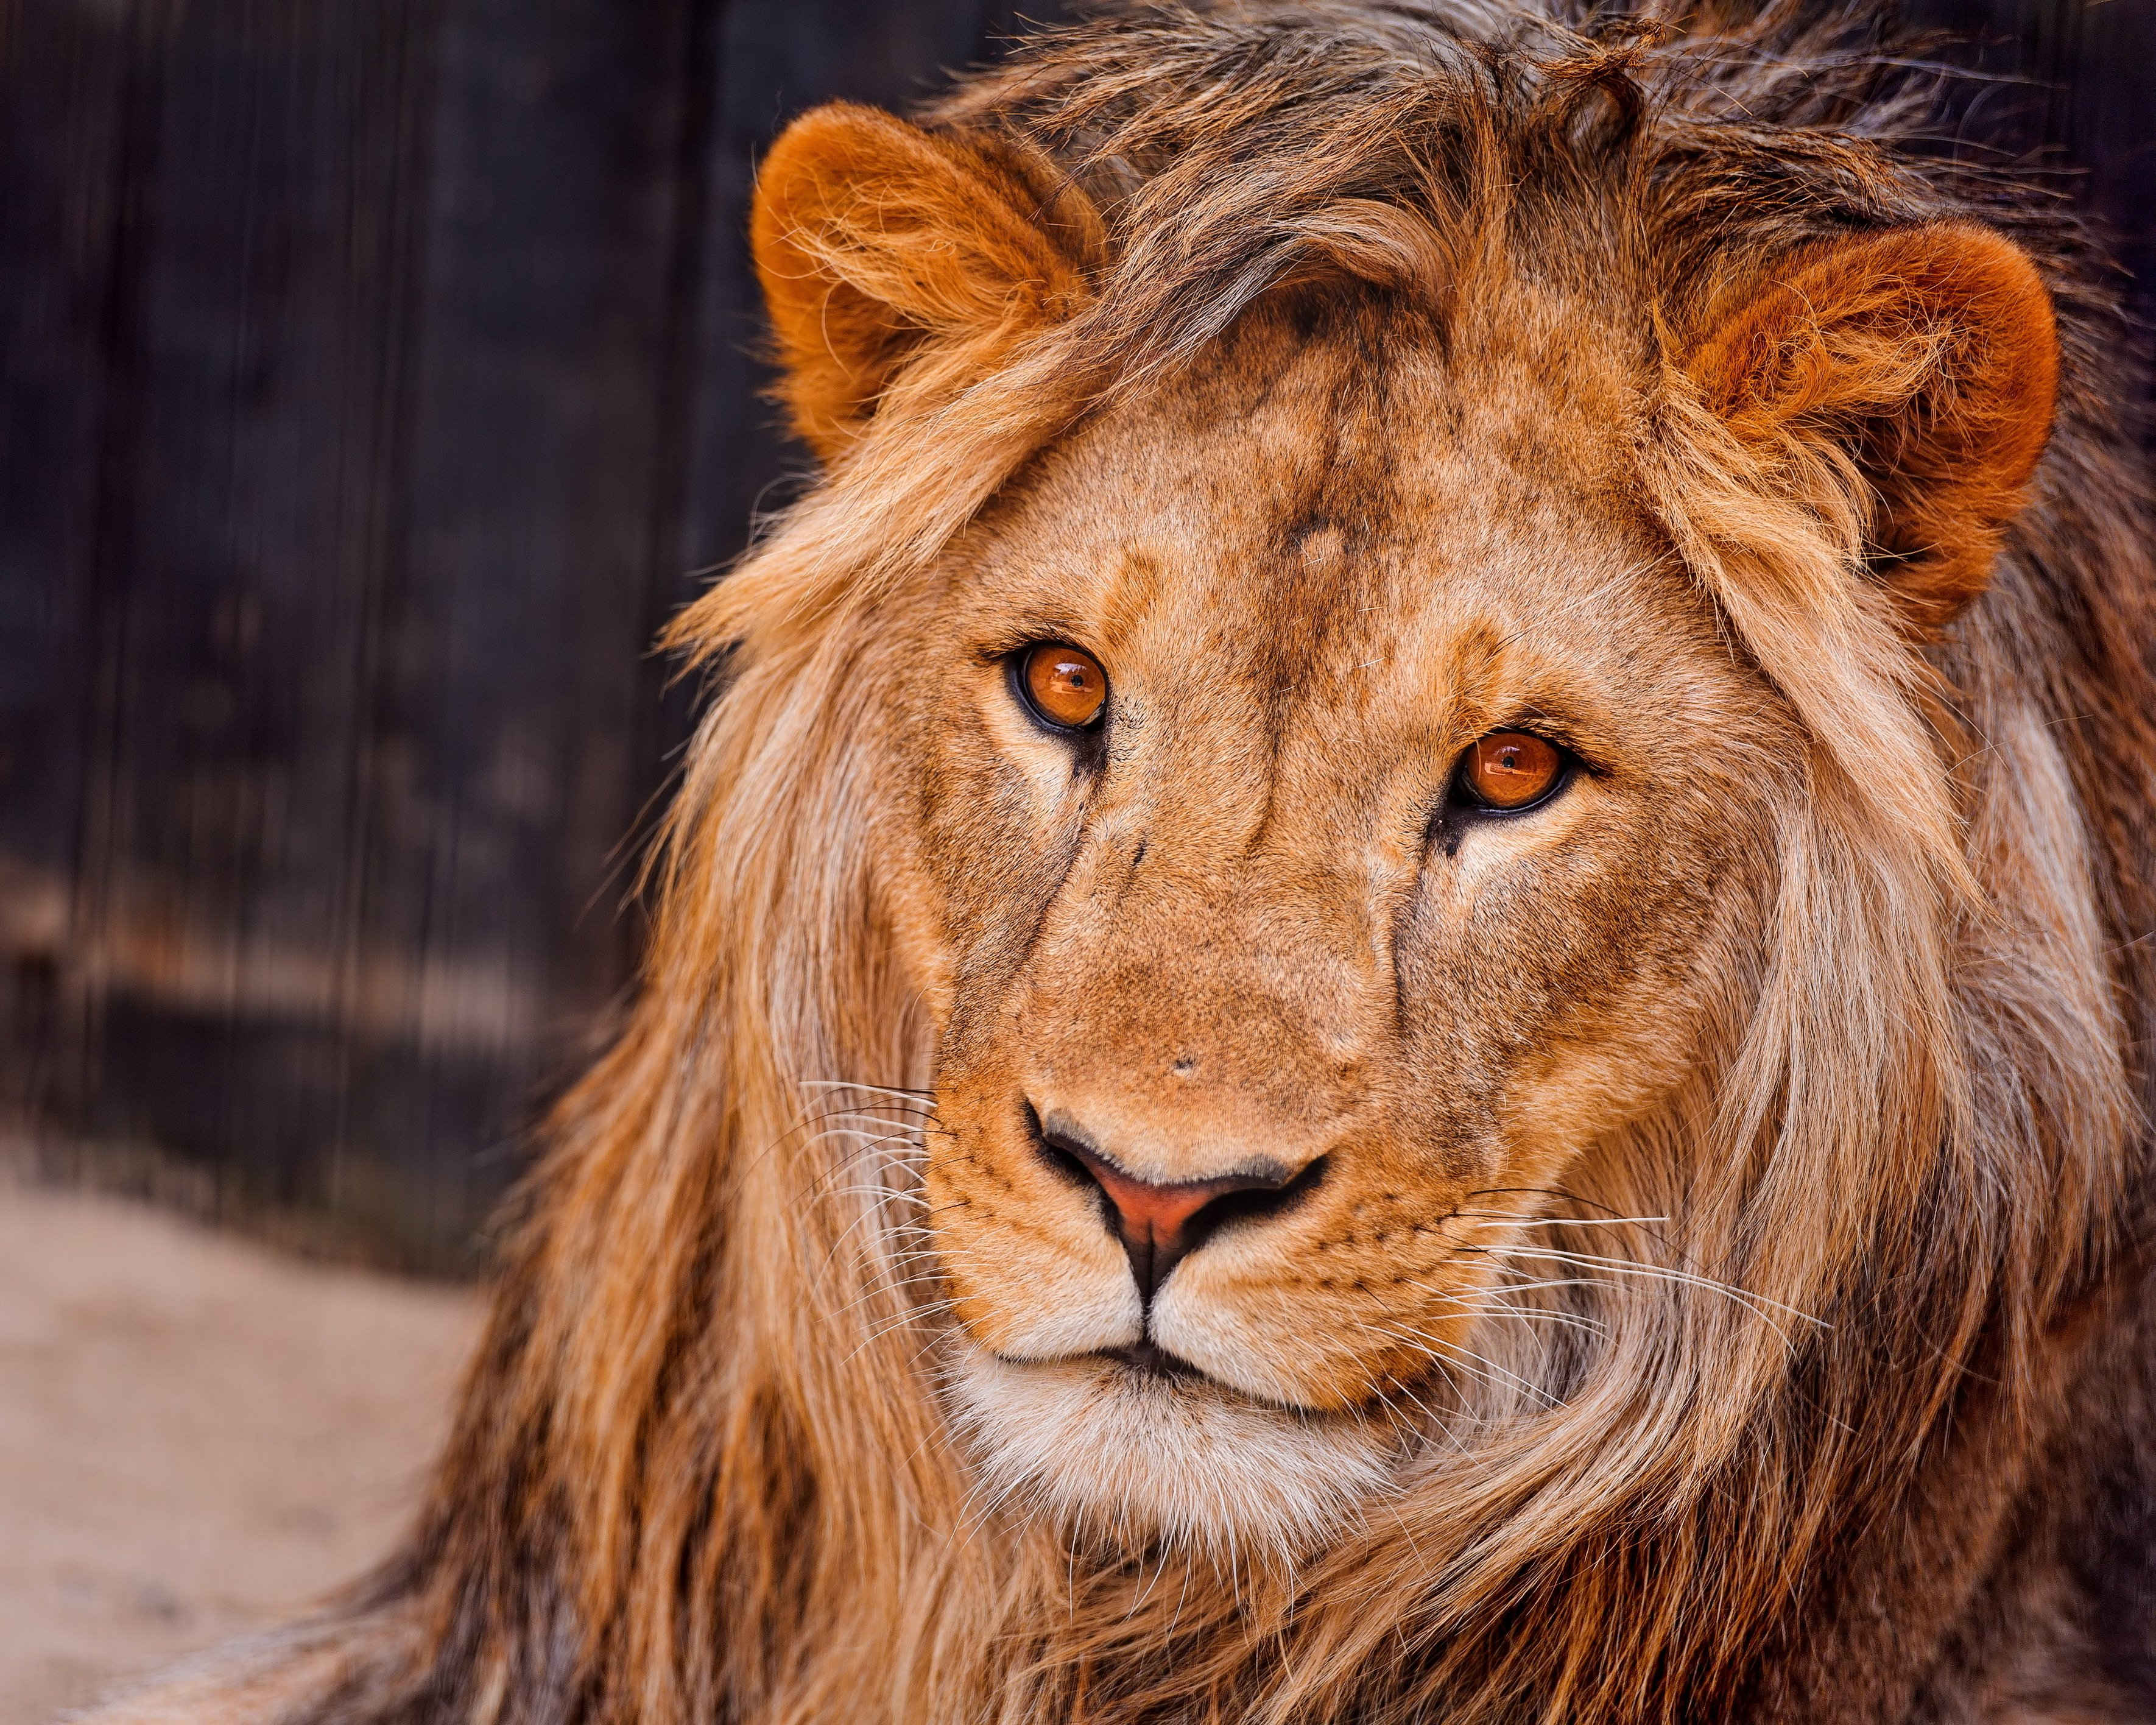 Lion face mane wallpaper   ForWallpapercom 3540x2832